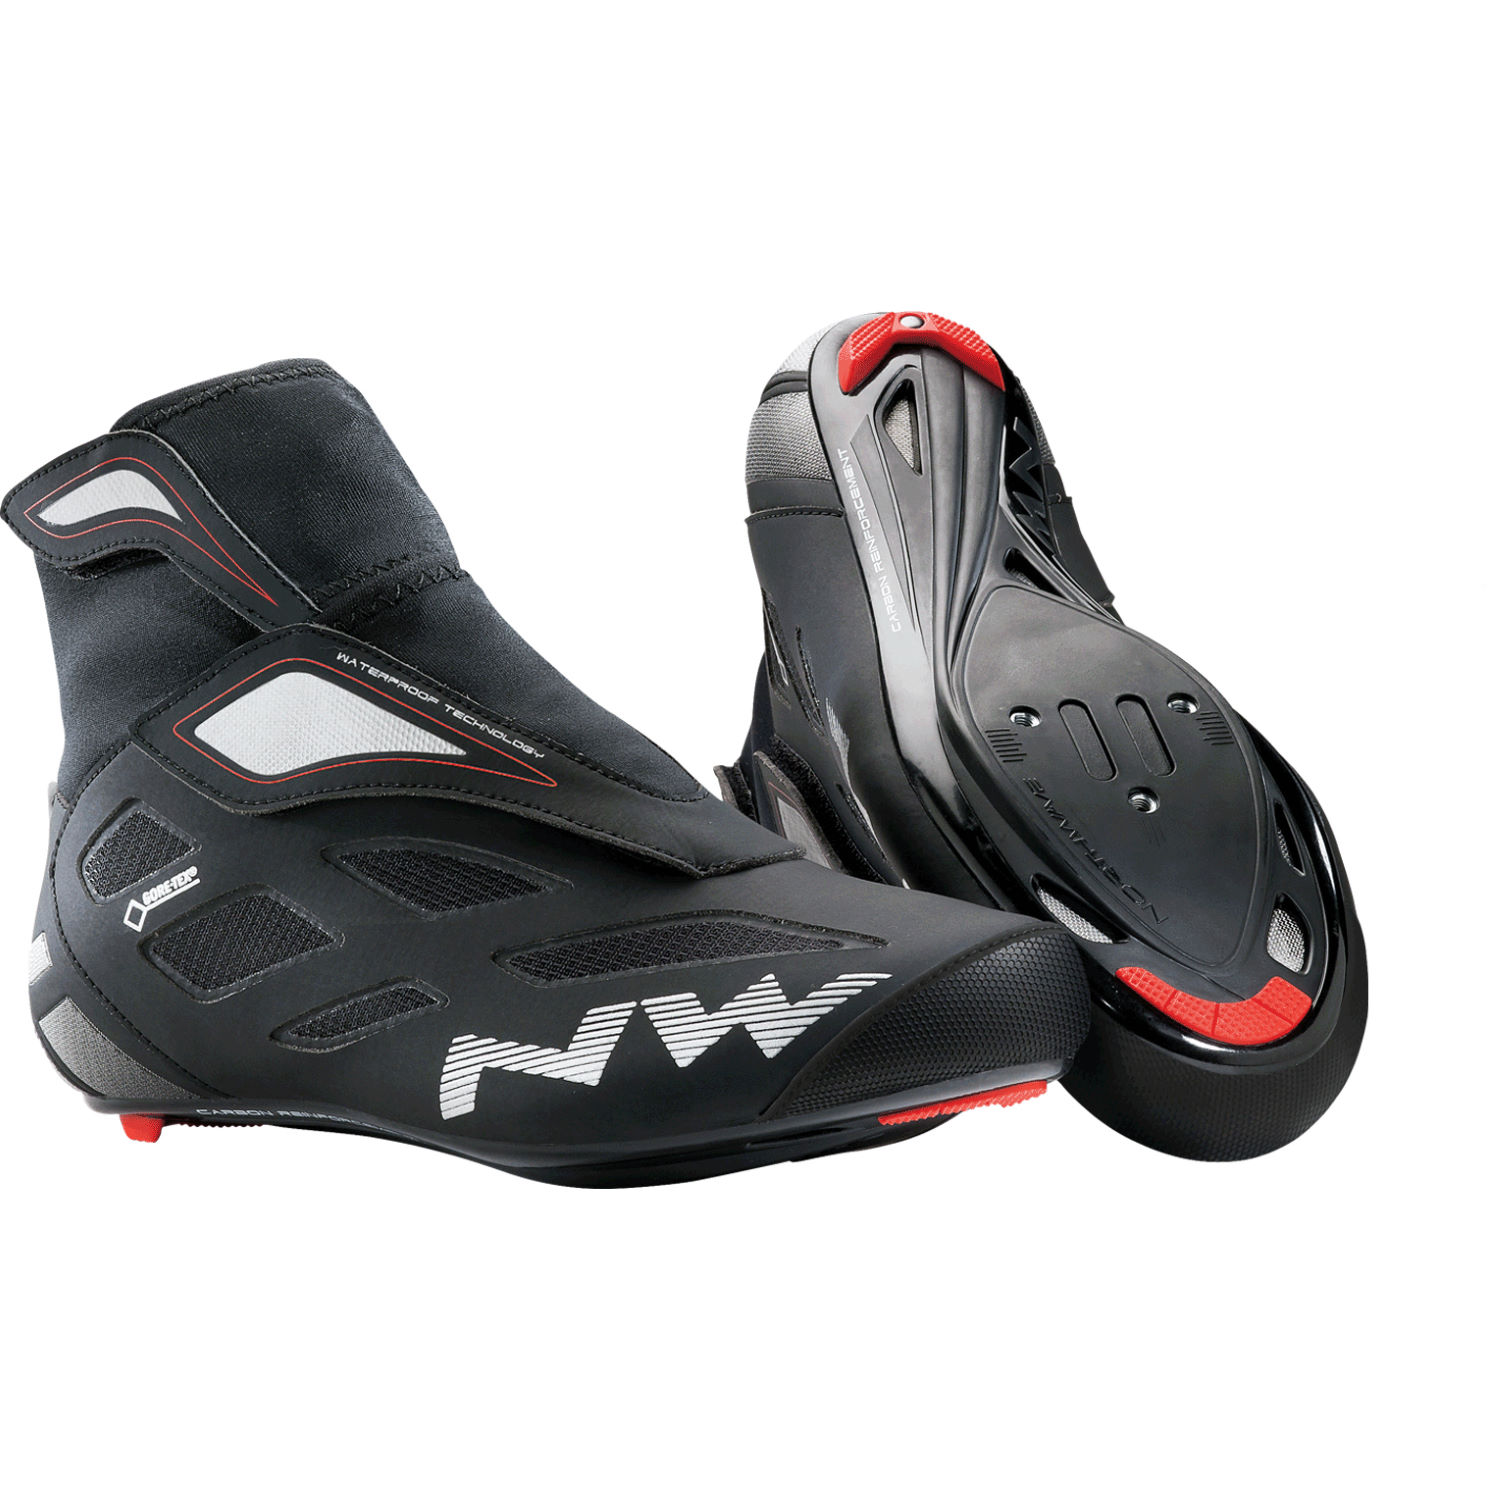 Road Cycling Shoe Reviews